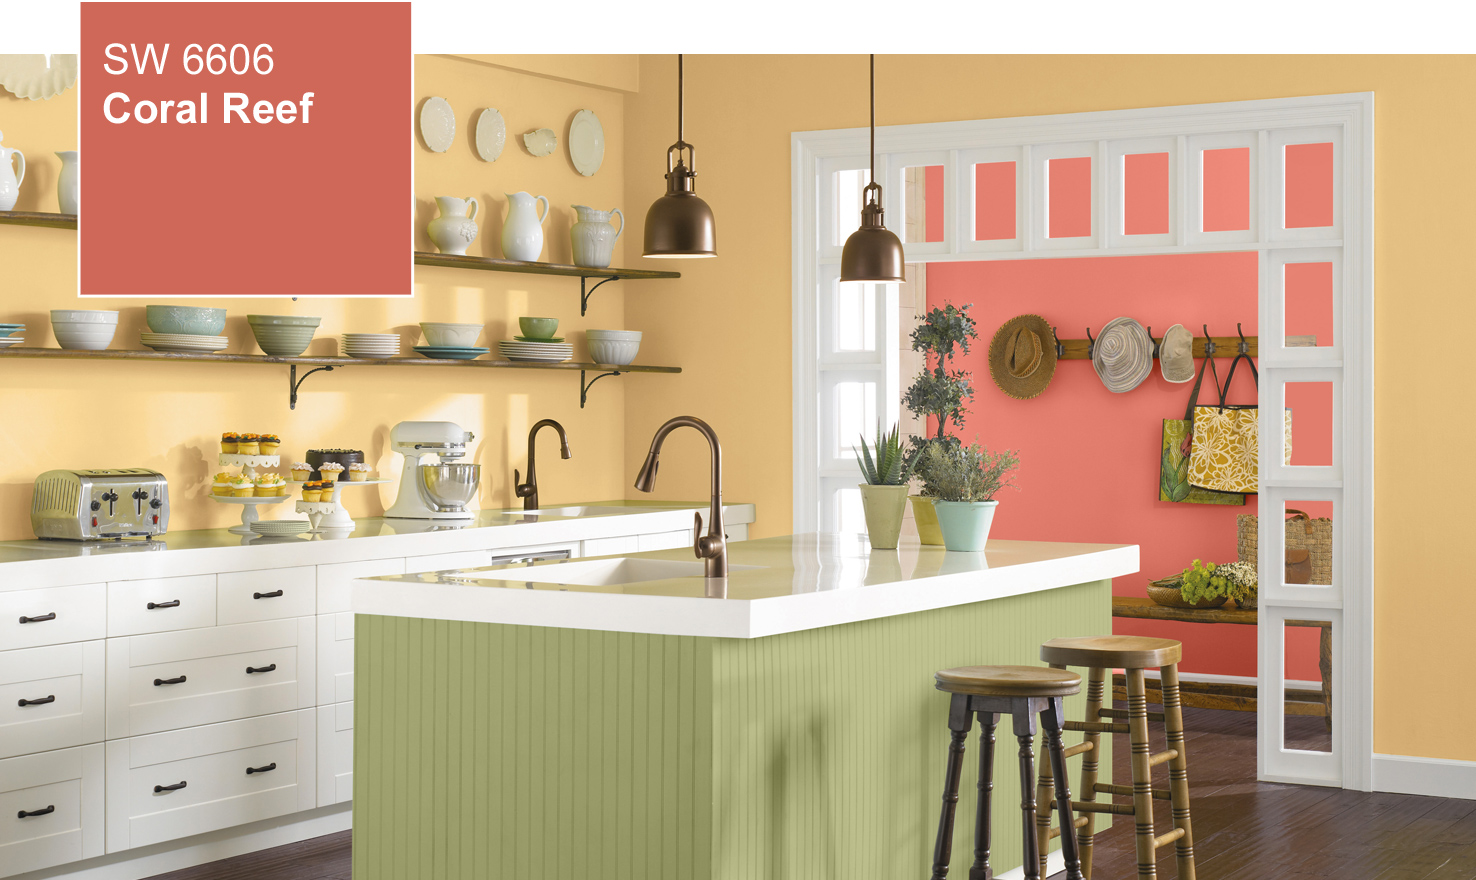 2015 Color Of The Year  Coral Reef (SW 6606) by Sherwin Williams